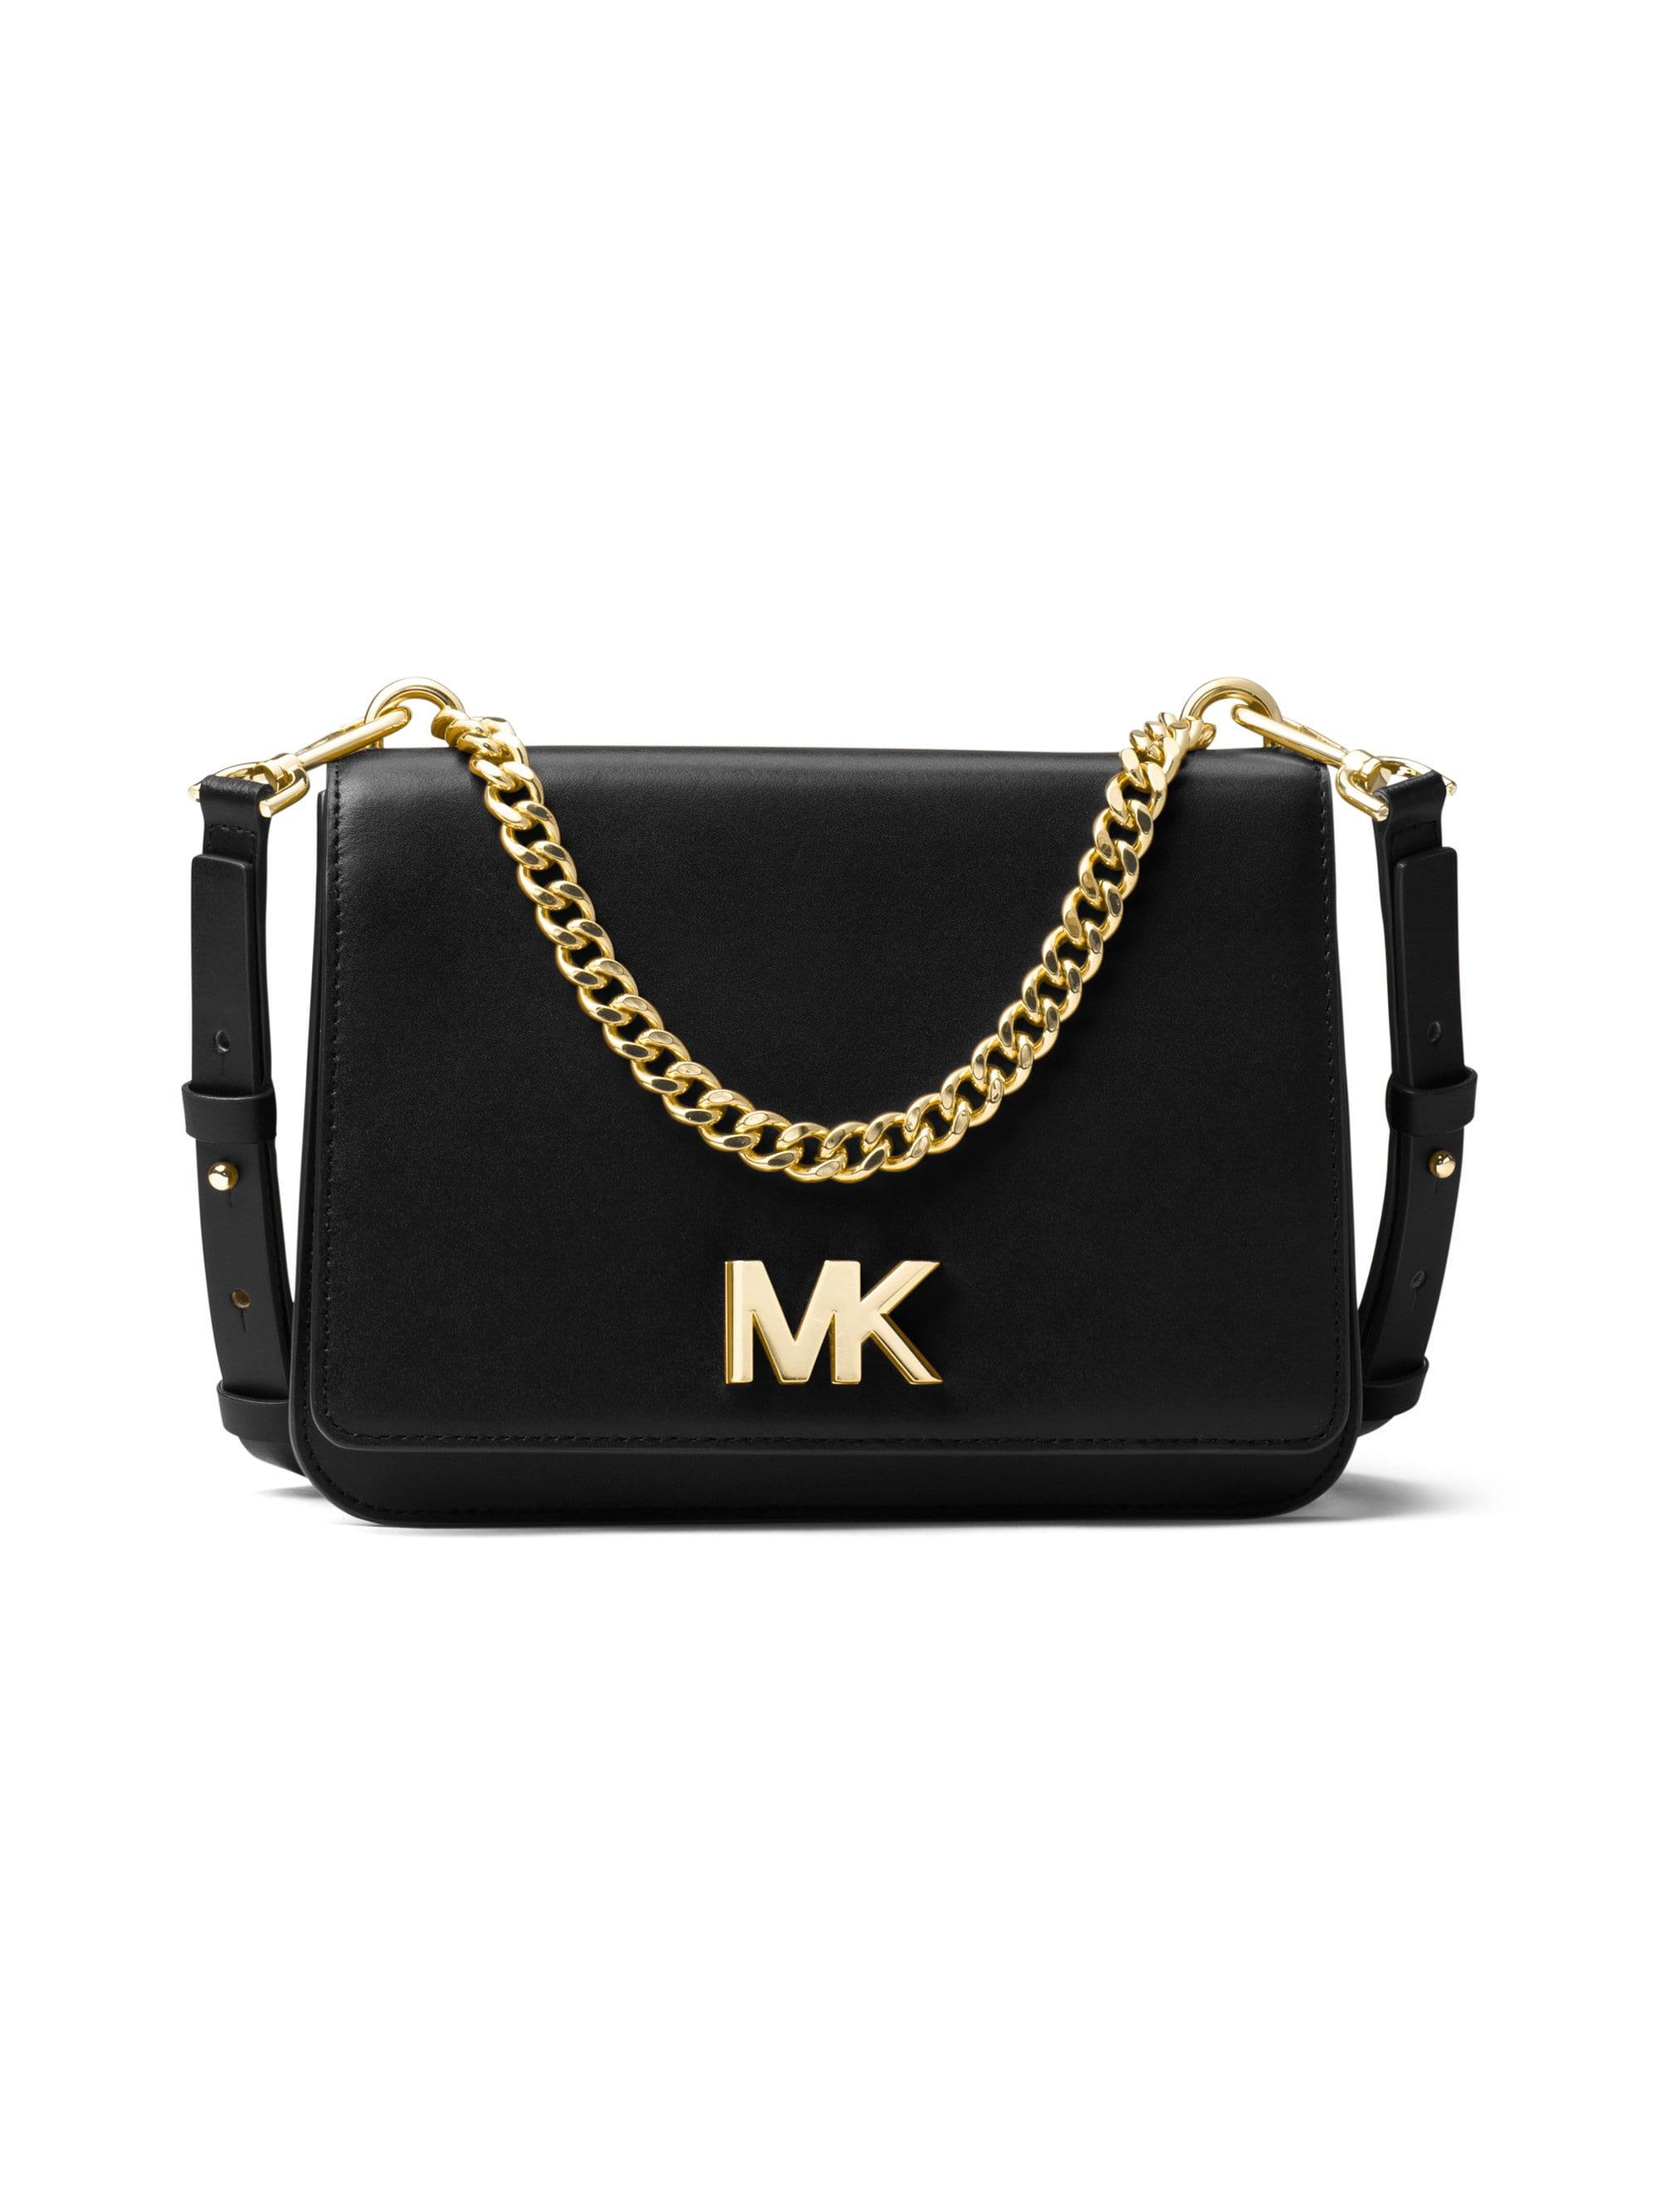 5152779aba92b Lyst - MICHAEL Michael Kors Mott Large Chain Swag Shoulder Bag in ...